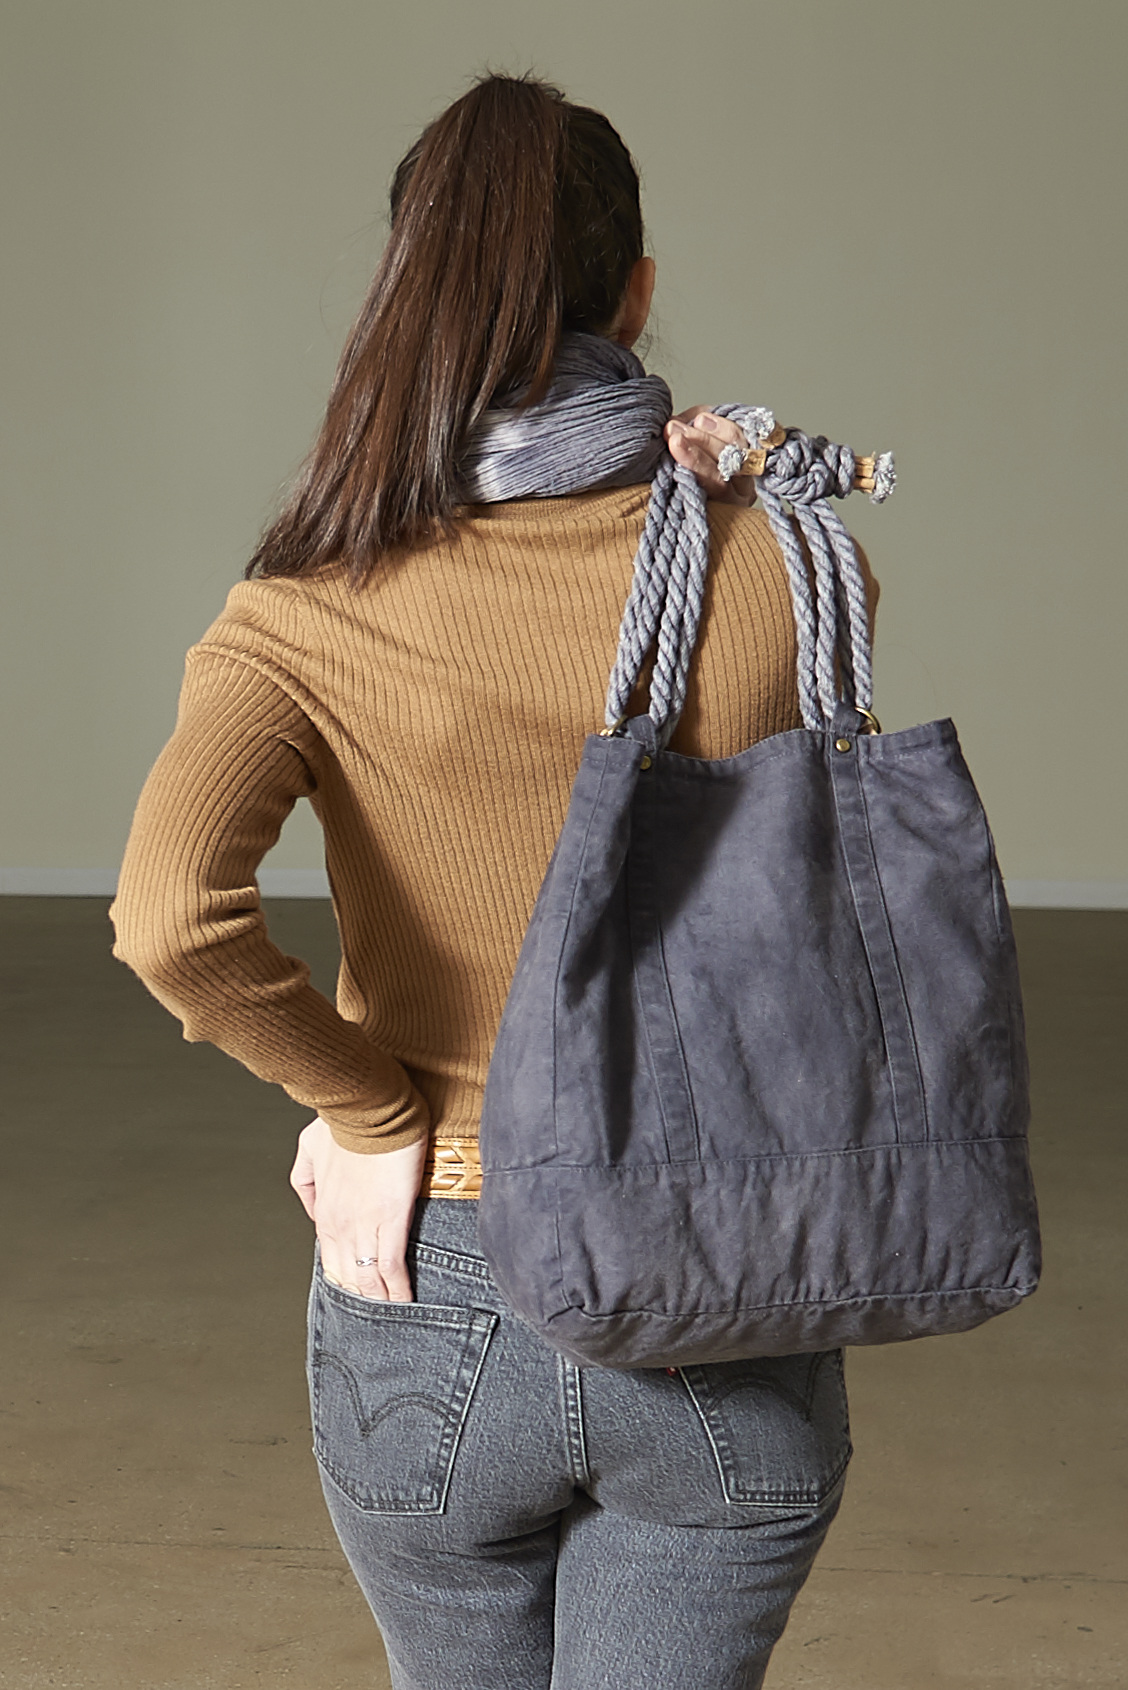 Kelocabay_eco_bags_Fashion_Photography_newYorkCity.jpg